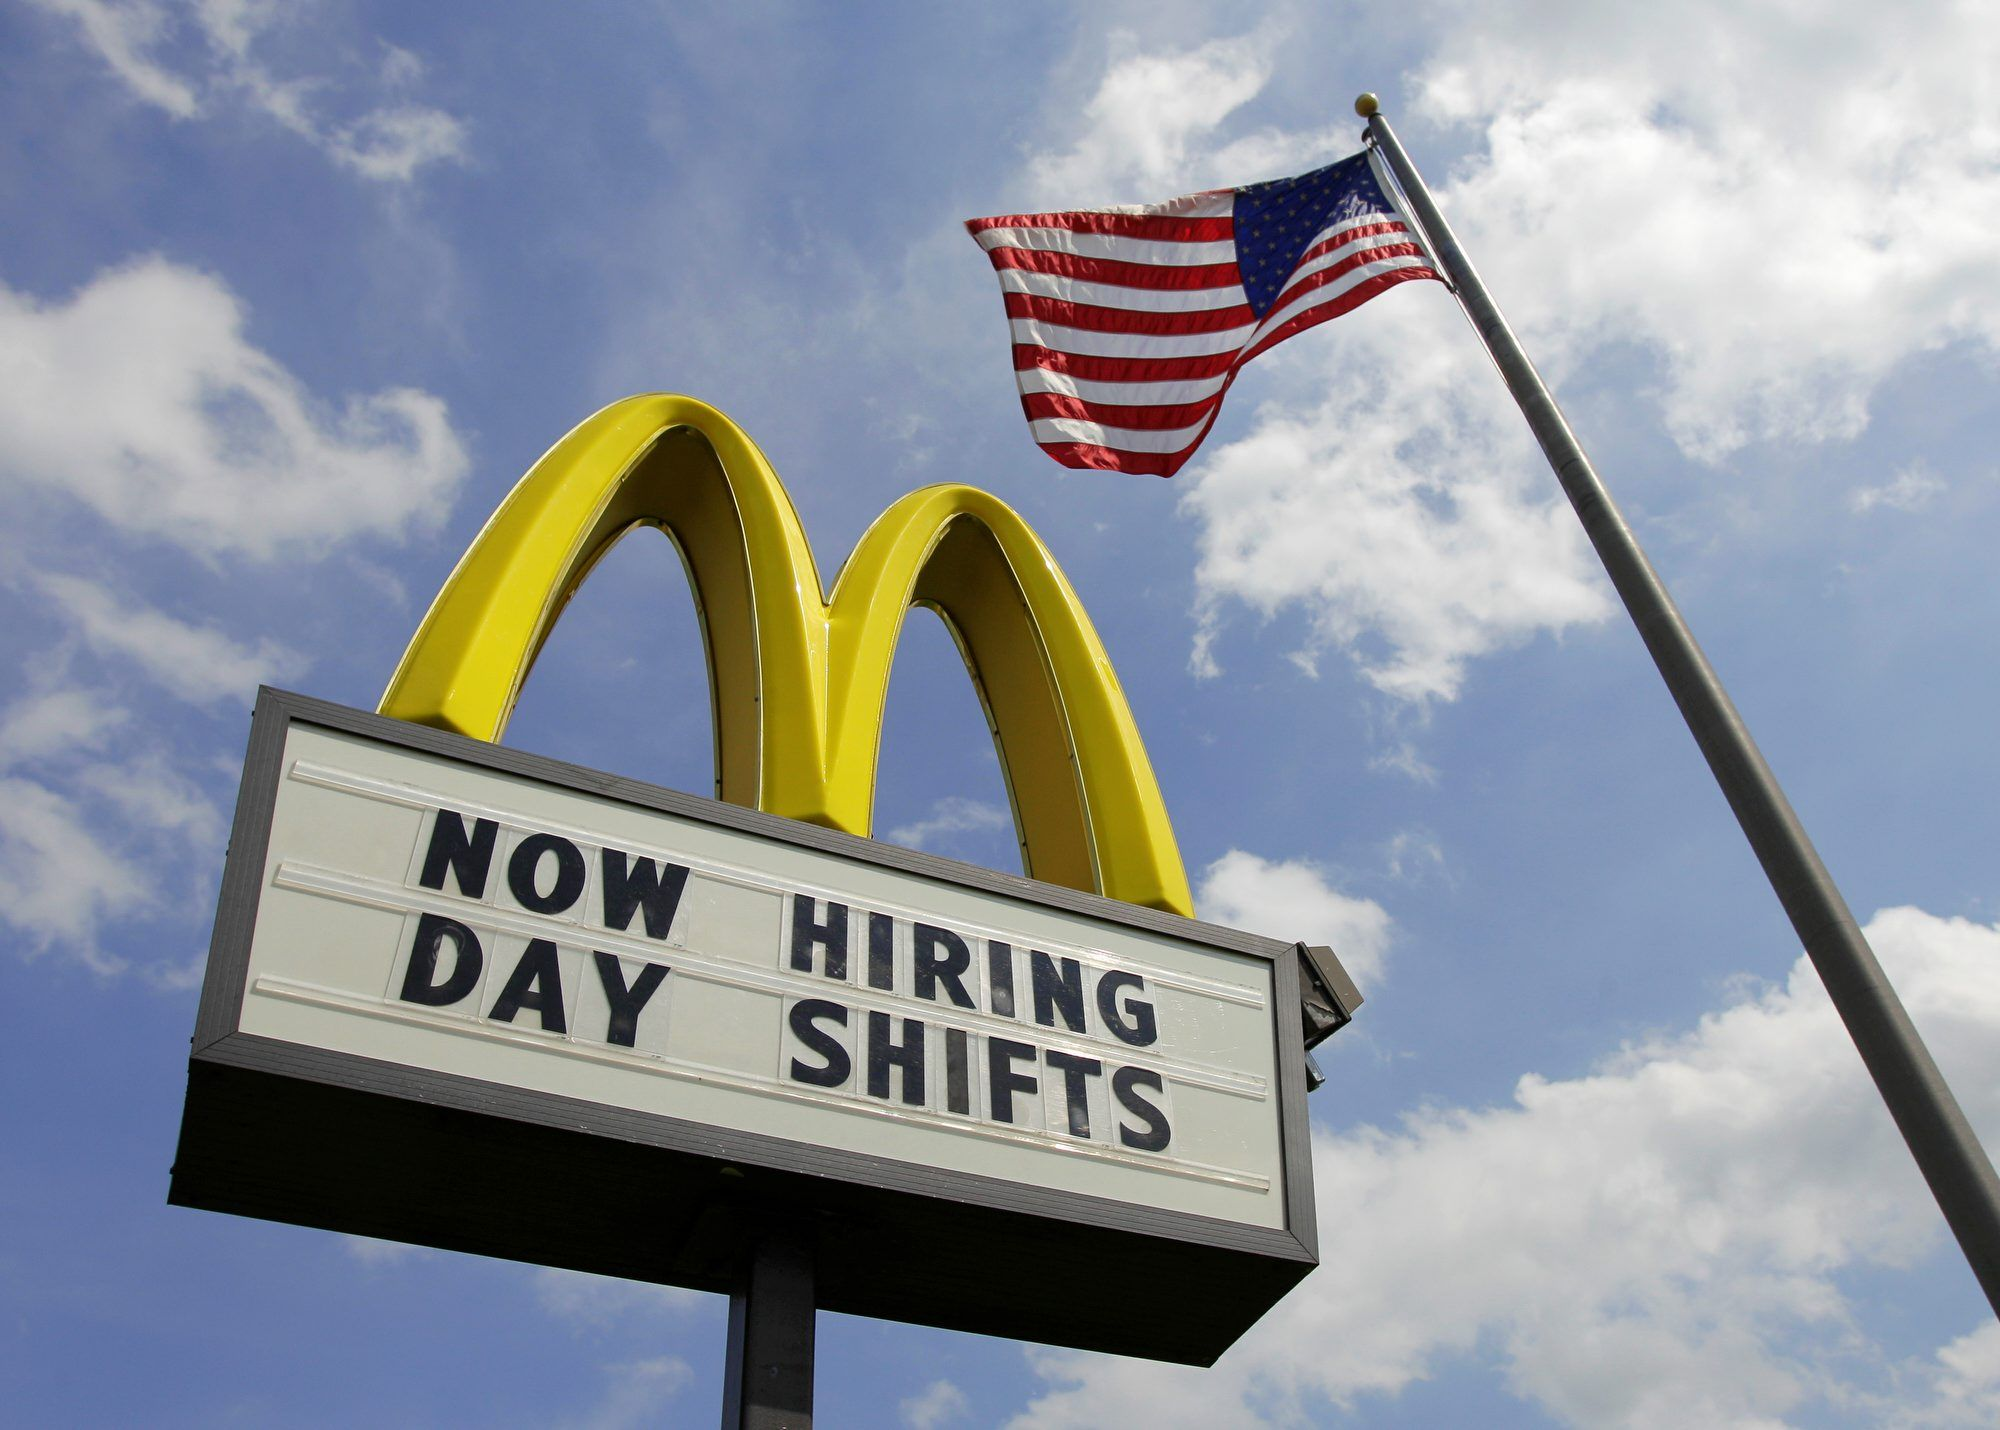 number of high school students jobs hits year low number of high school students jobs hits 20 year low washington times